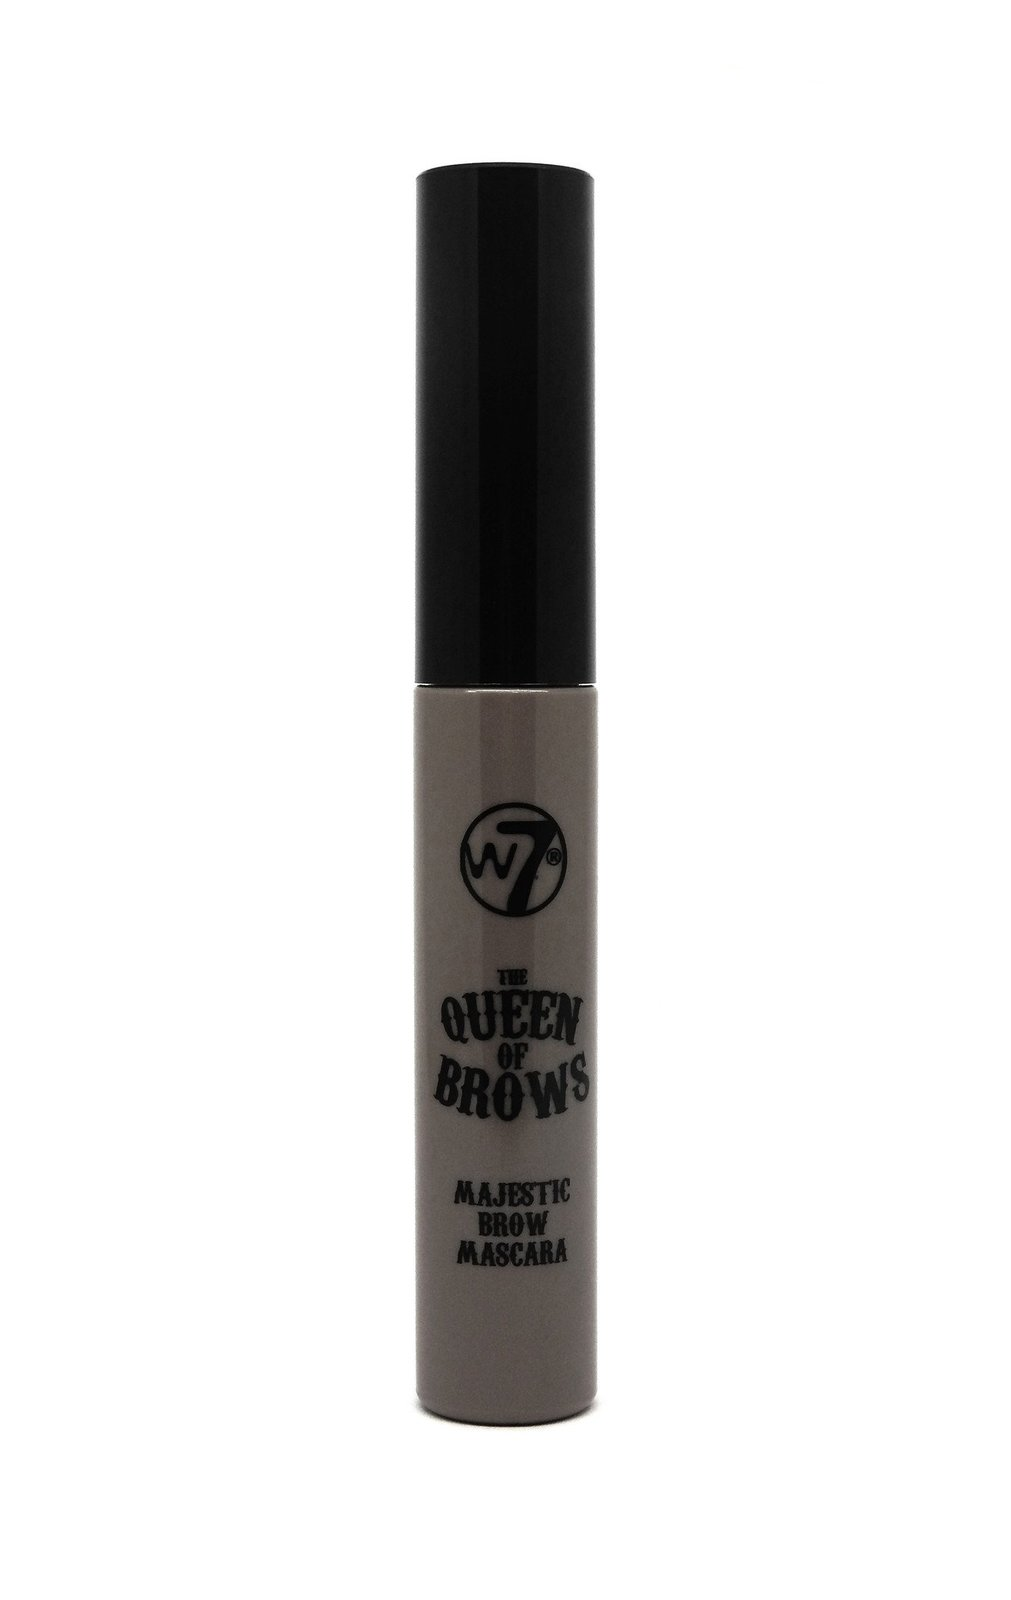 W7 Queen of Brows Majestic Brow Mascara (Medium Deep) image